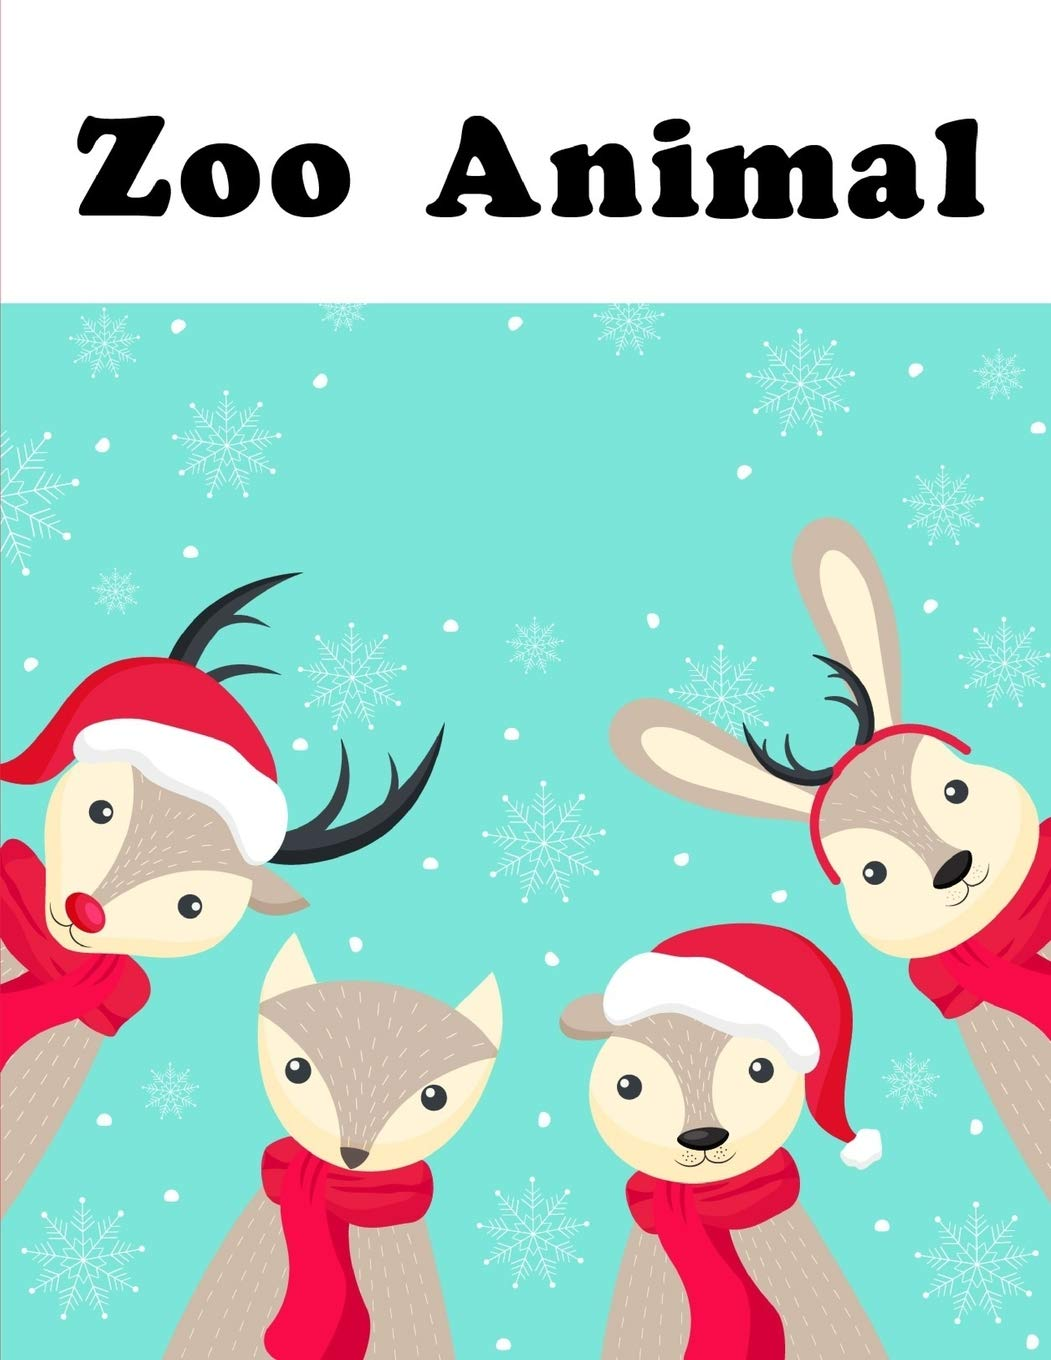 Zoo Animal Coloring Pages Relax Design From Artists For Children And Adults Easy Drawing Color Creative 9781711310428 Amazon Com Books